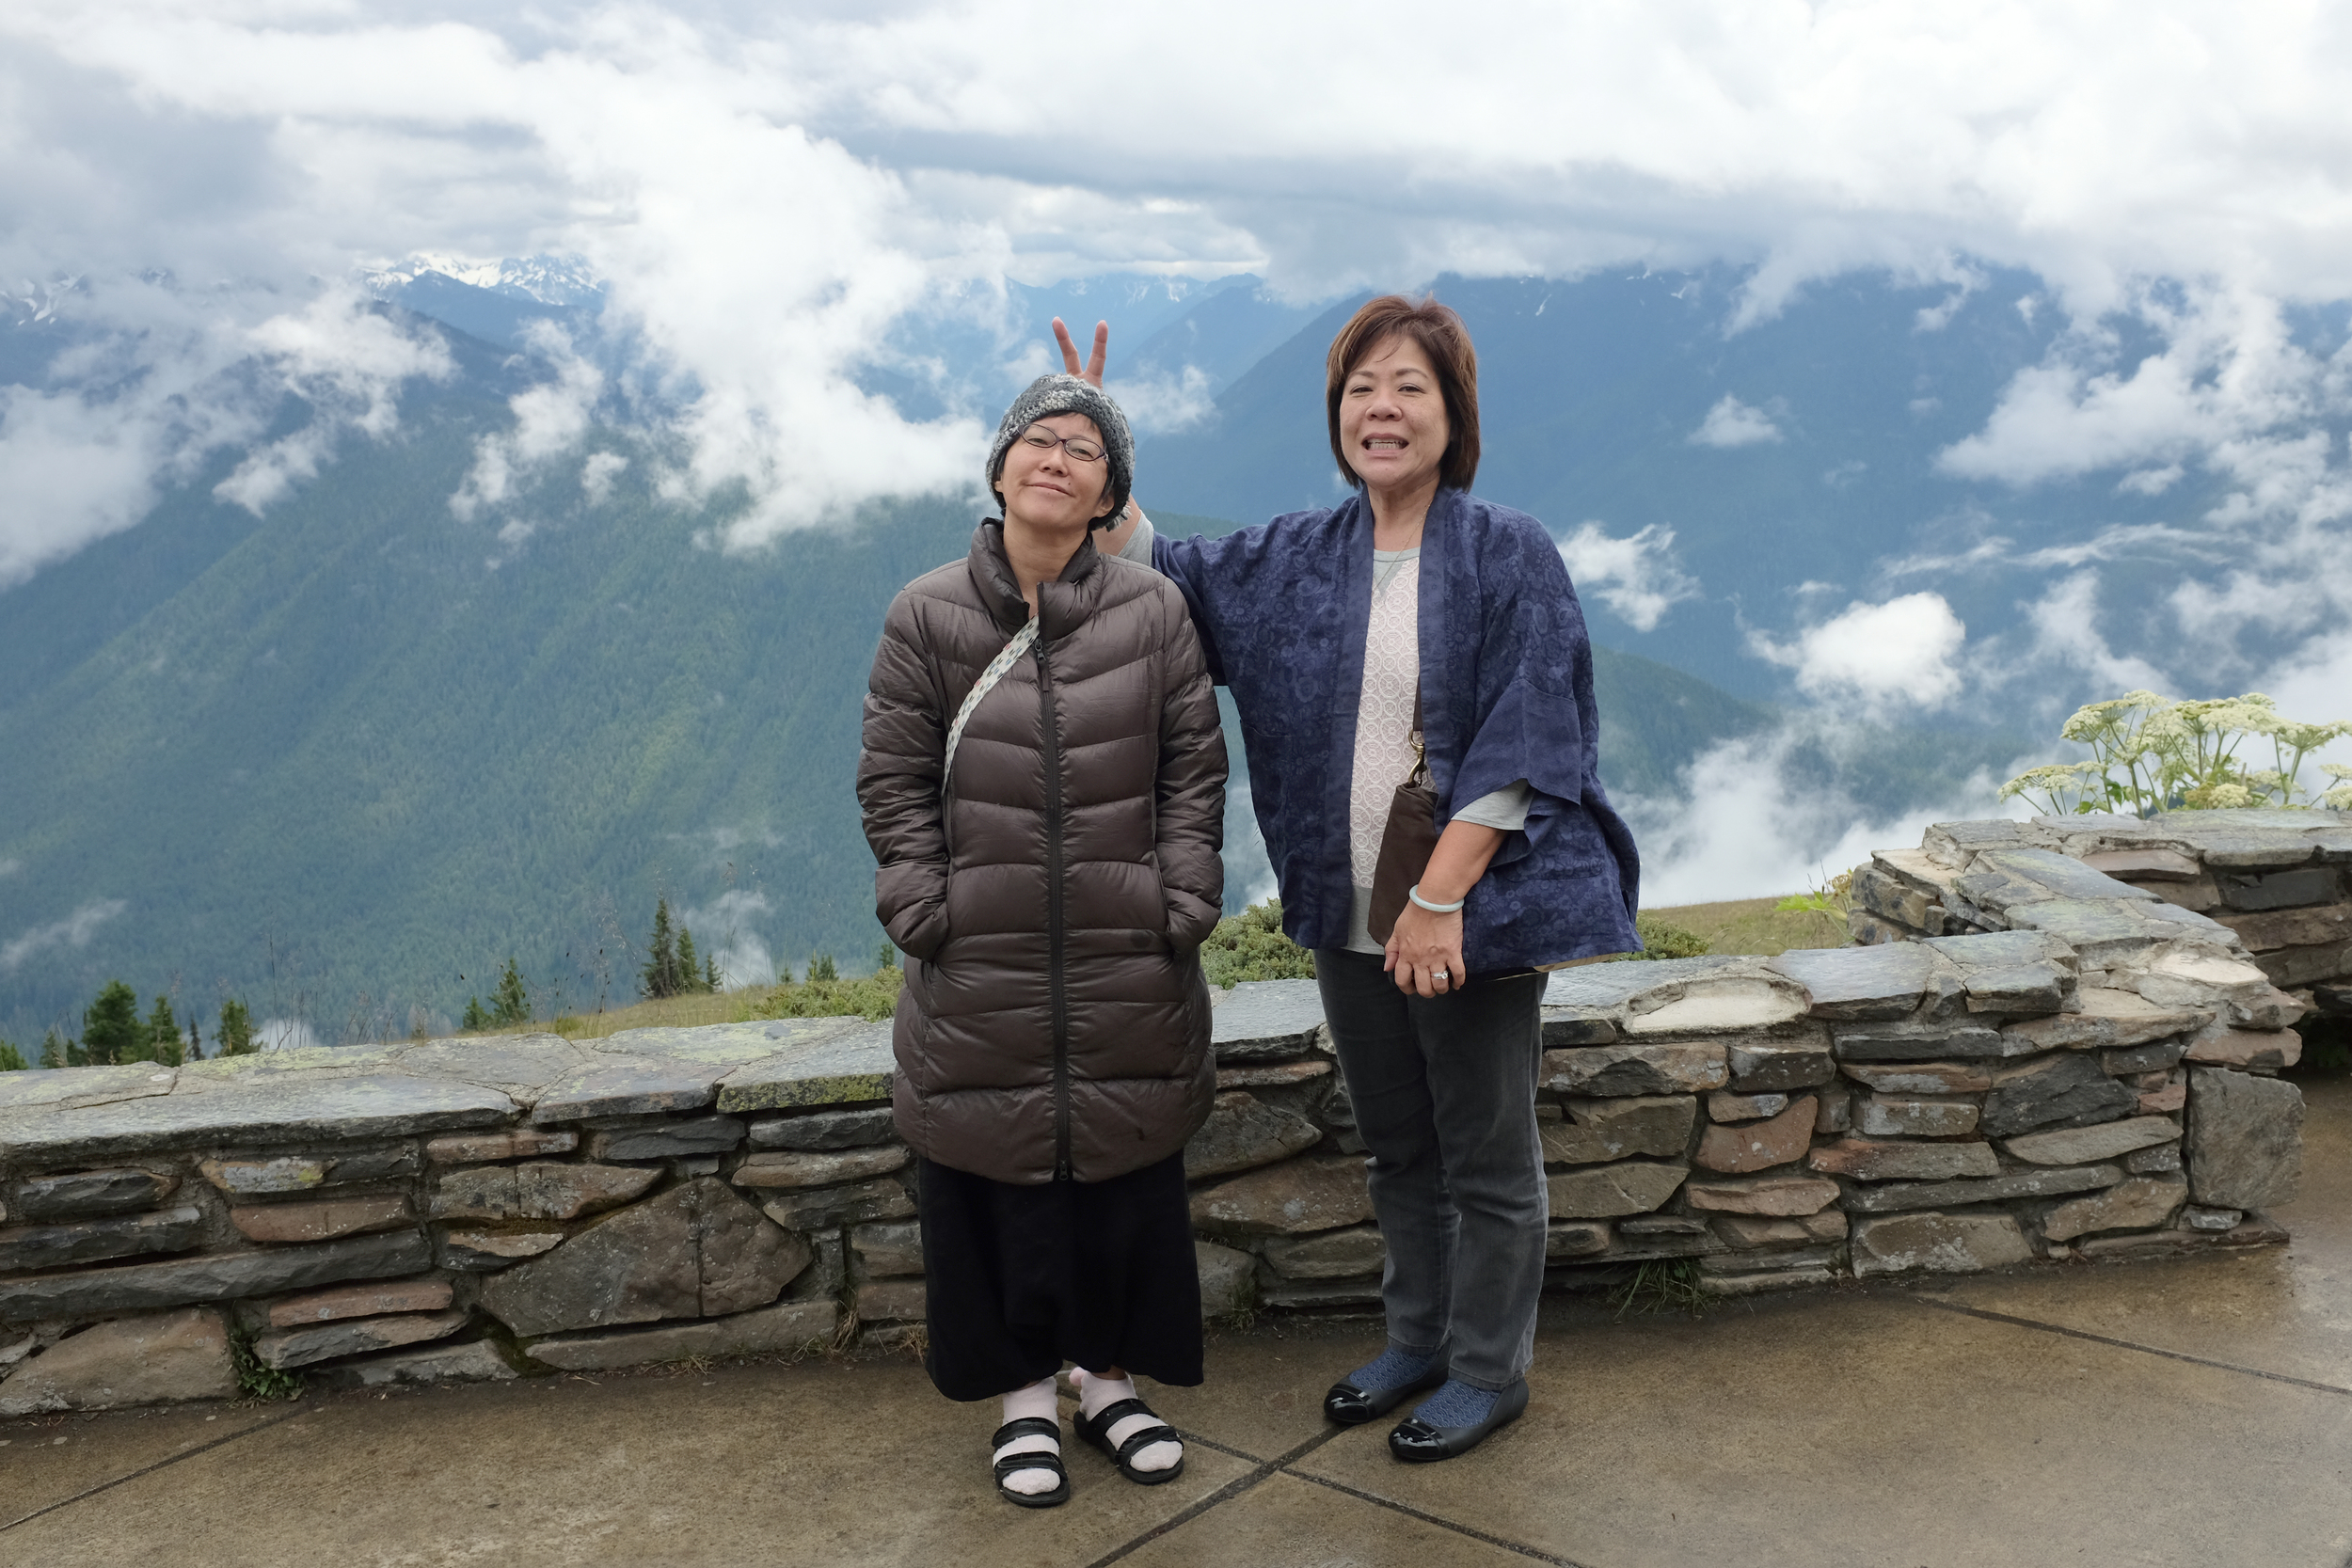 Reiko & Gayle at the Hurricane Ridge lookout, Olympic National Park.  Photo by Shishido.